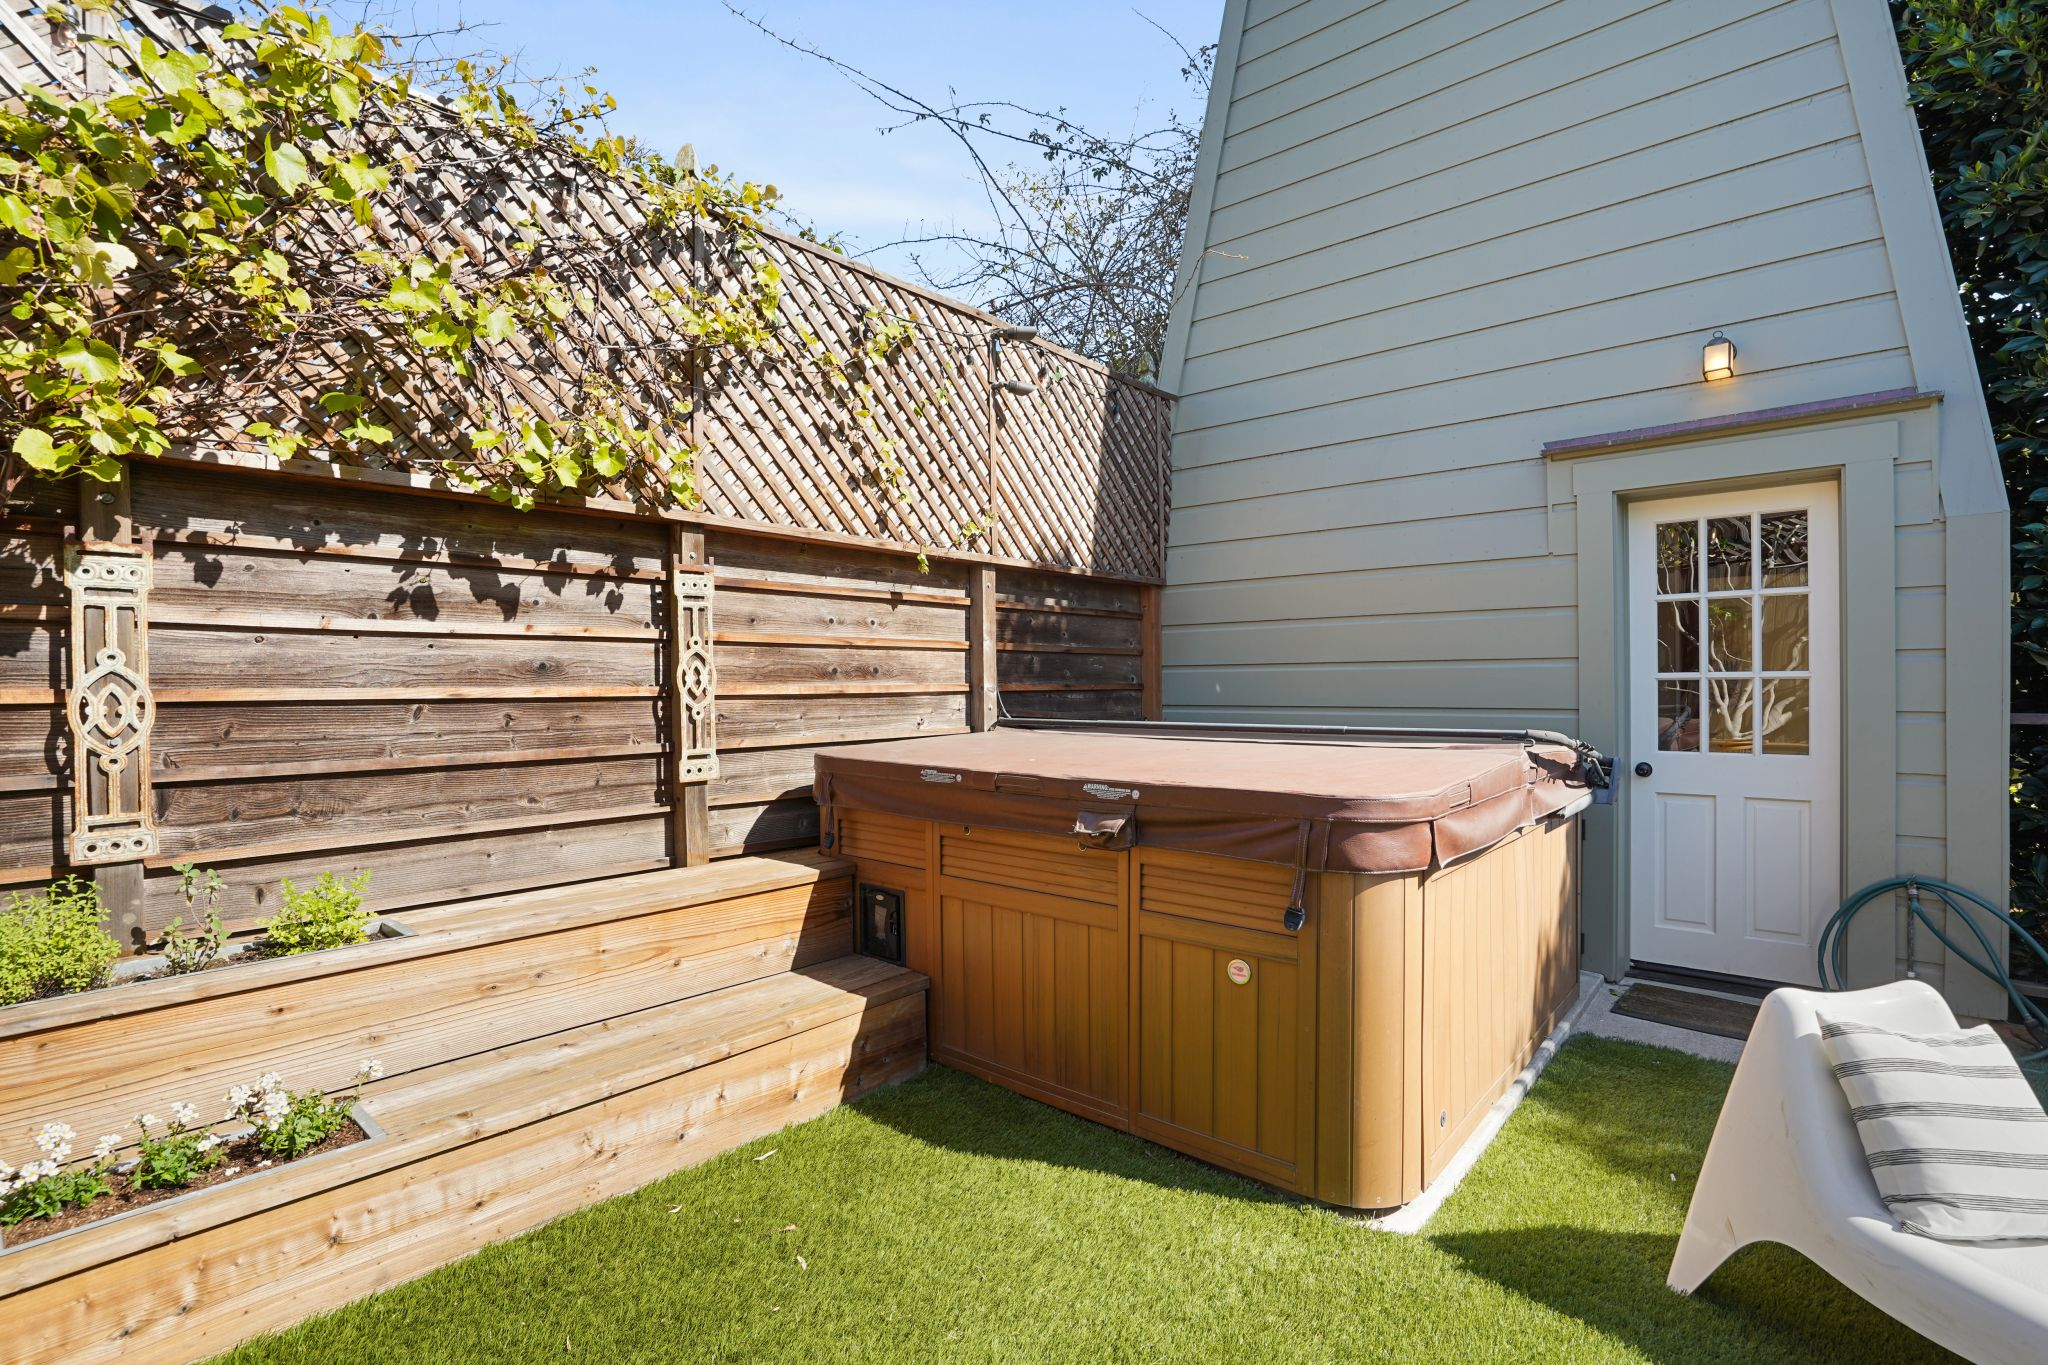 The backyard also includes a hot tub.